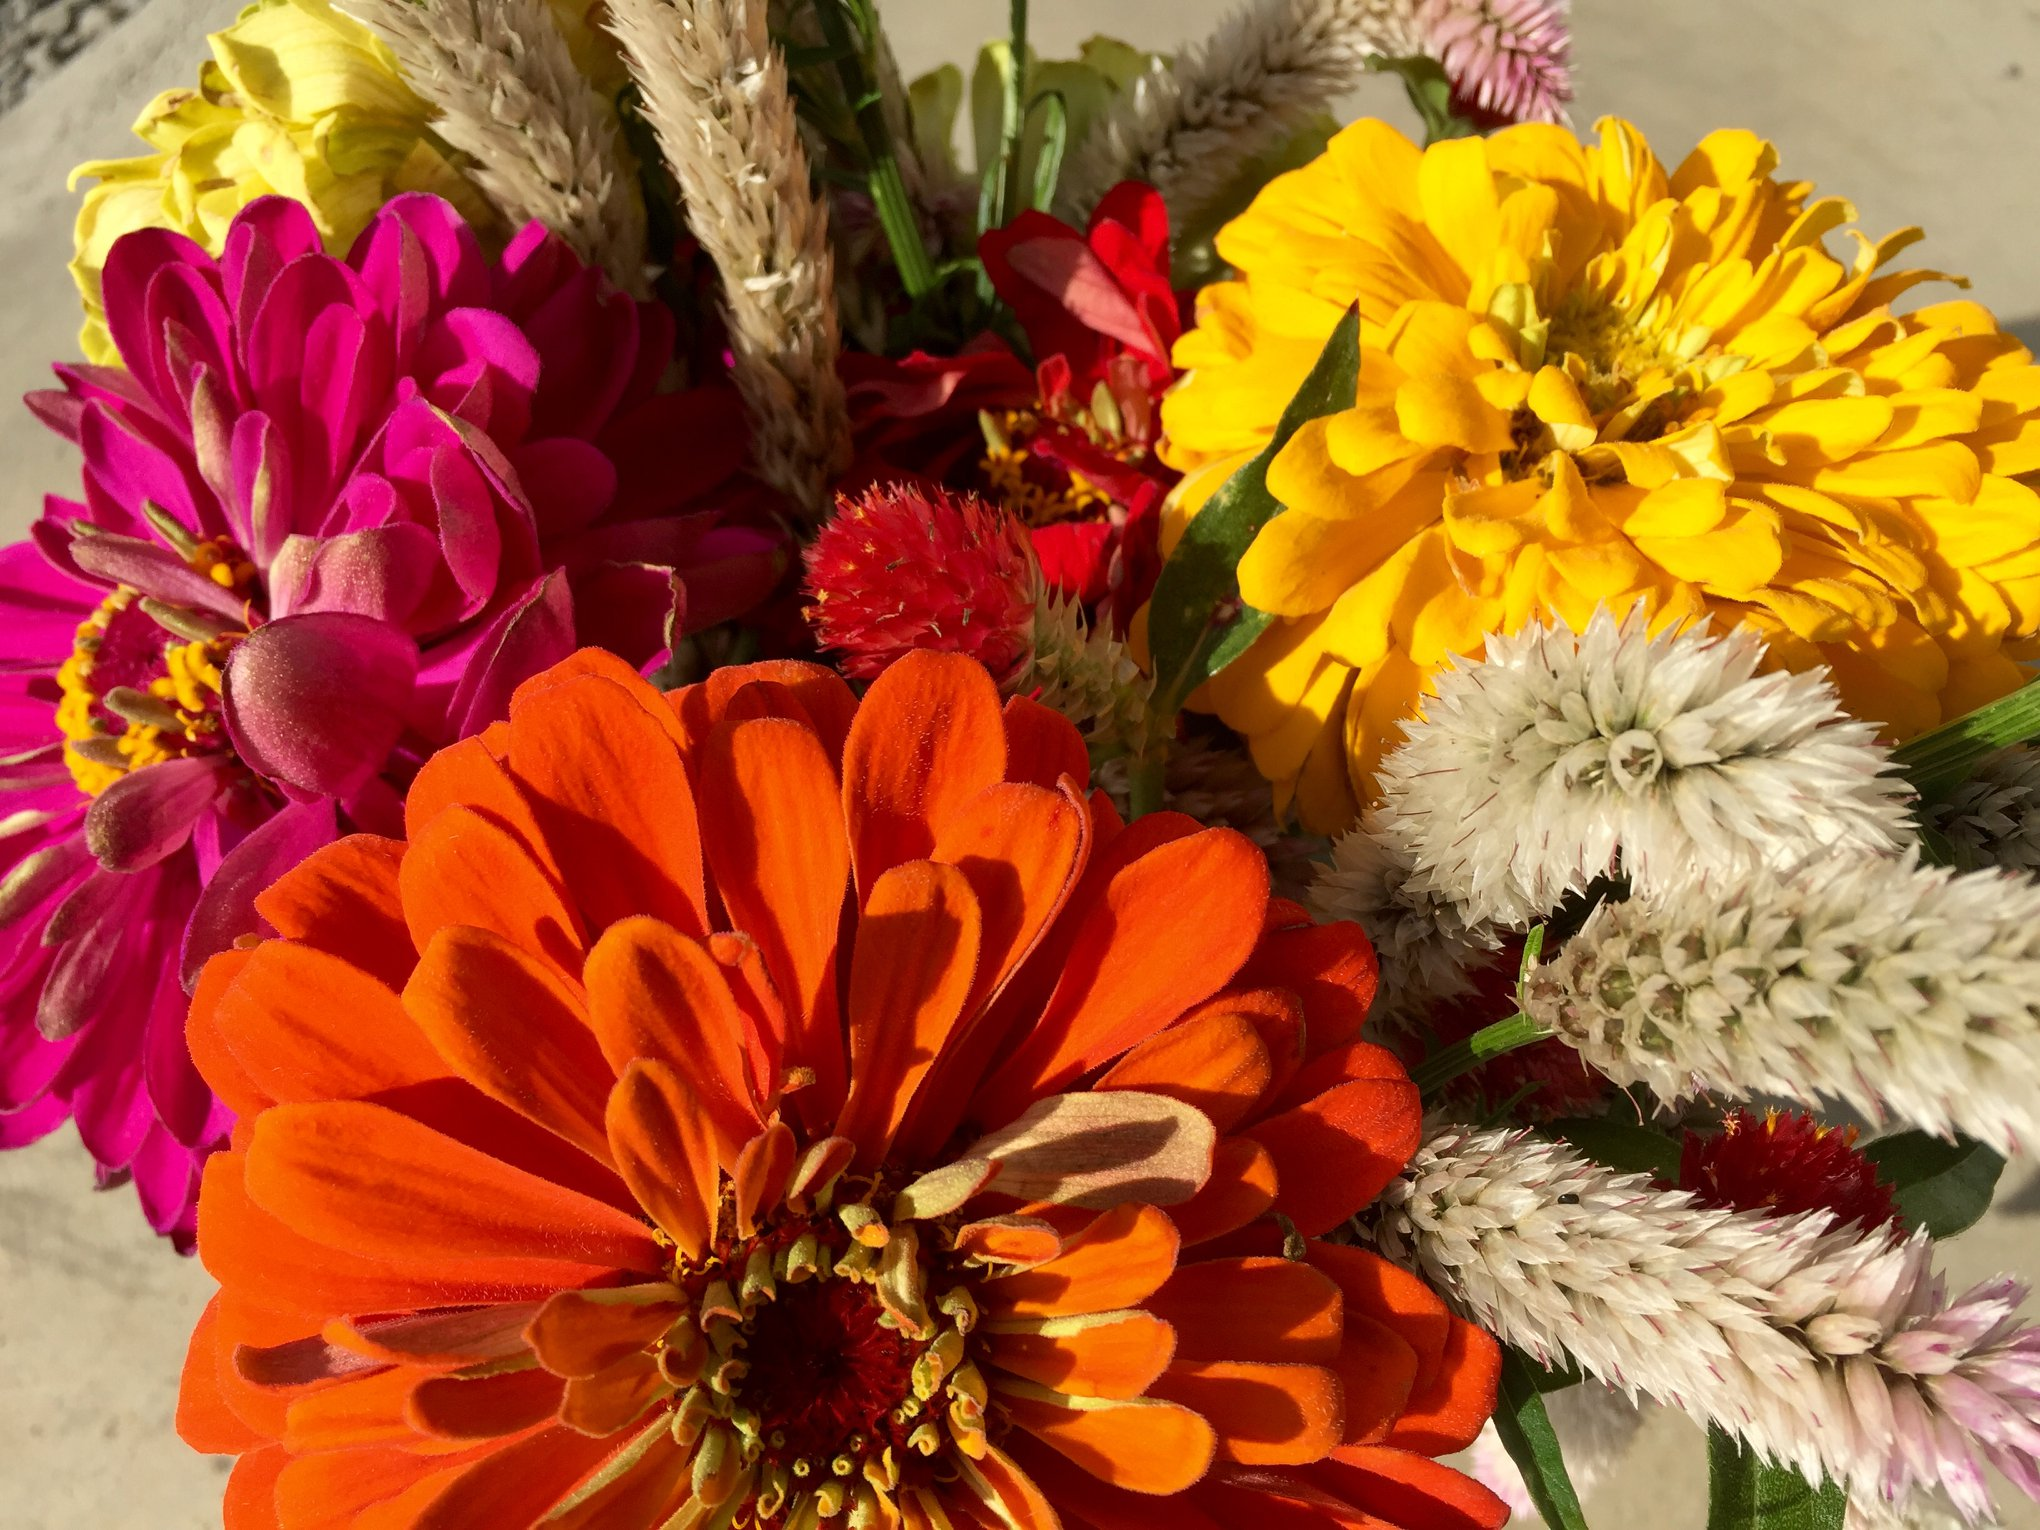 Pick beautiful zinnias during our zinnia experience at Grim's Orchard in Breinigsville PA